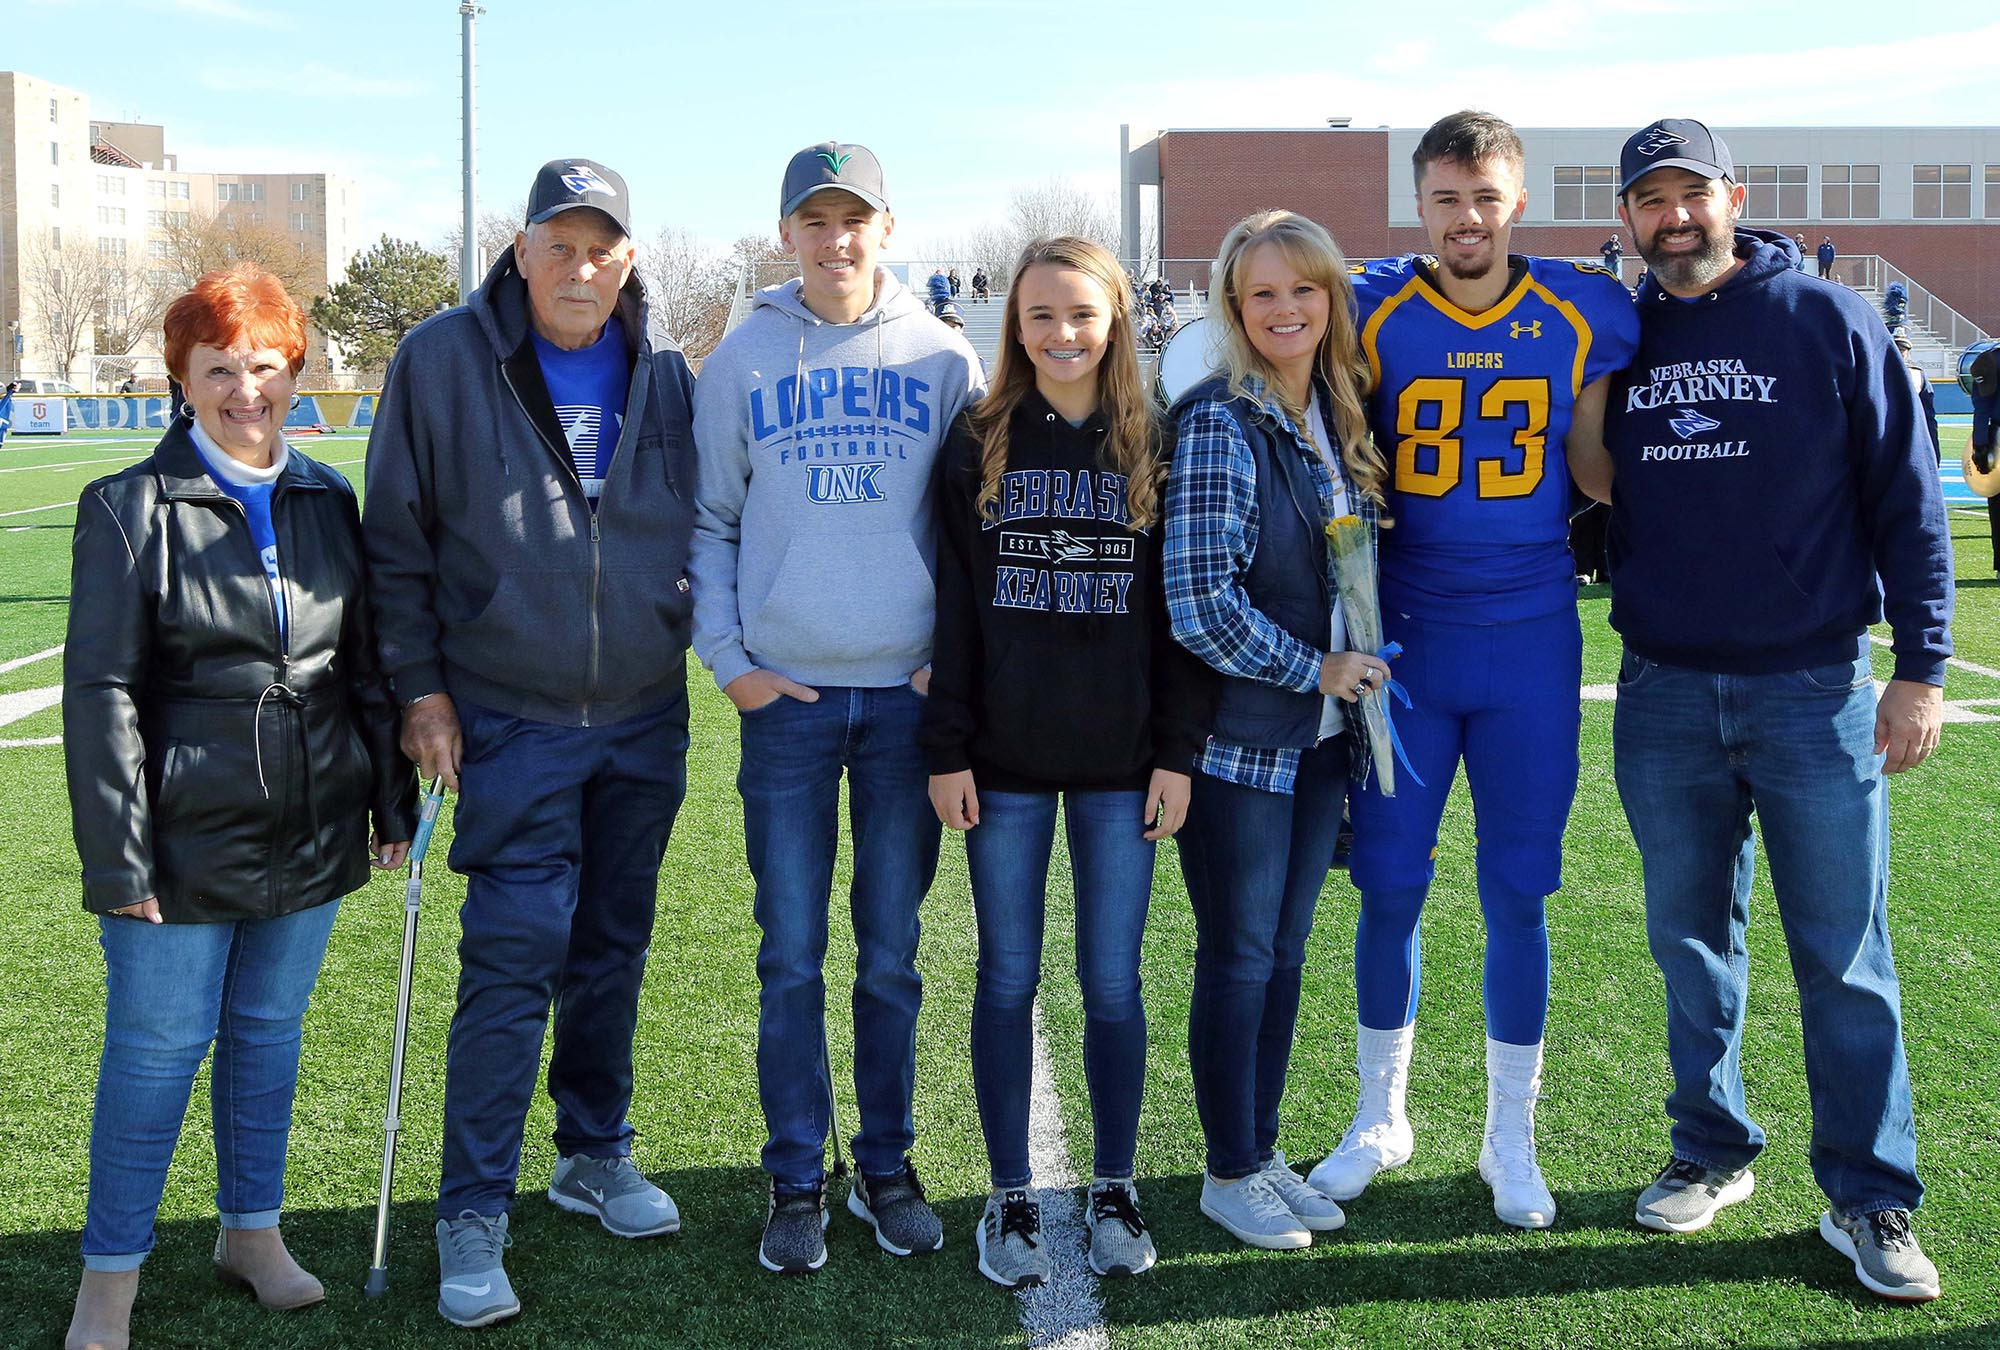 UNK football player Mitch Carlson, second from right, poses for a photo with his family during Saturday's Senior Day festivities at Cope Stadium. Pictured, from left, are Carlson's grandparents Donna and Rich Myers, his siblings Connor and MaKenna and his parents Tammy and Brad. (Photo by Todd Gottula, UNK Communications)